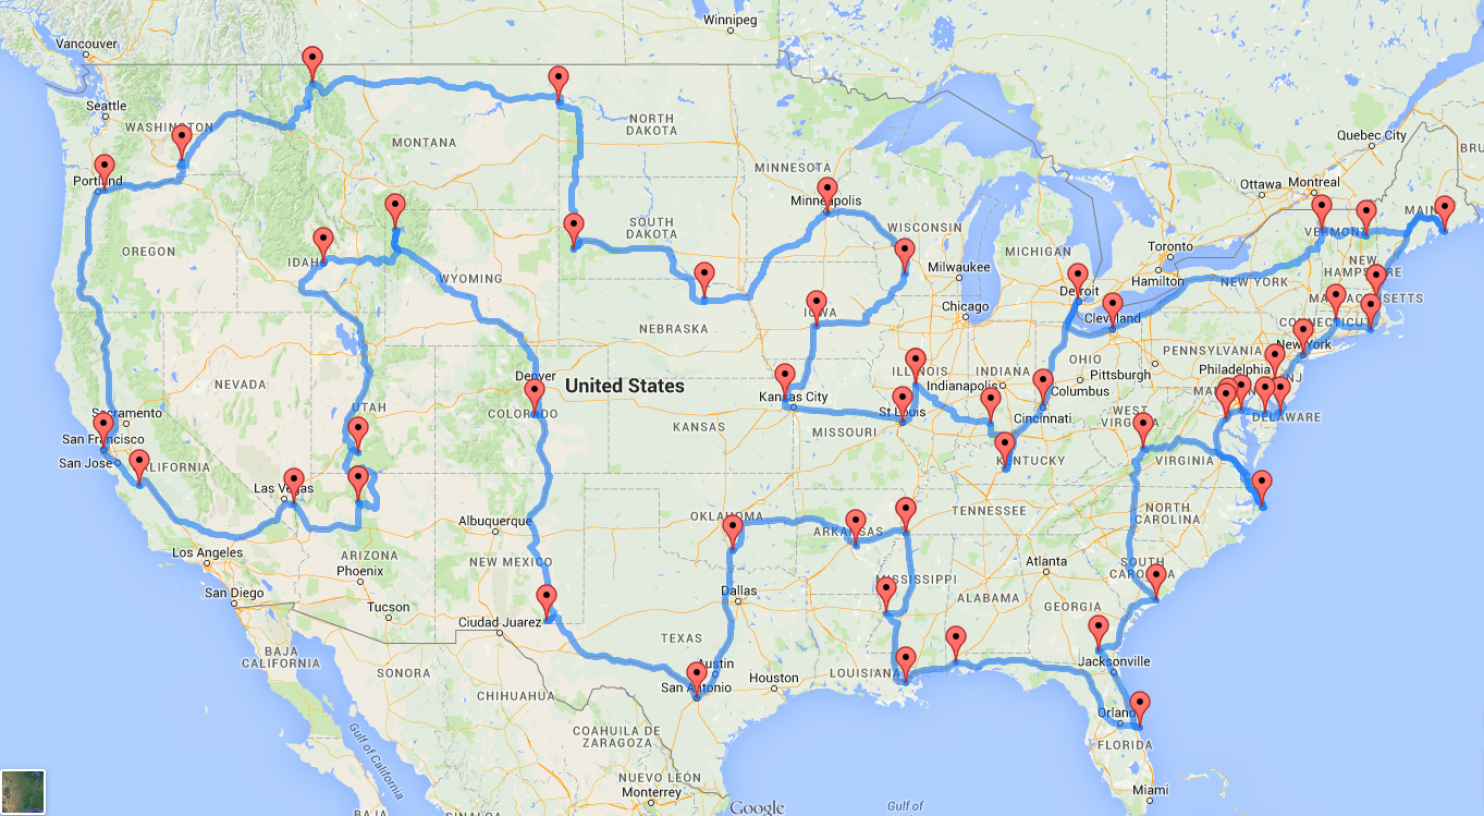 A Data Genius Computes The Ultimate American Road Trip Road Trips - Us national parks road trip map